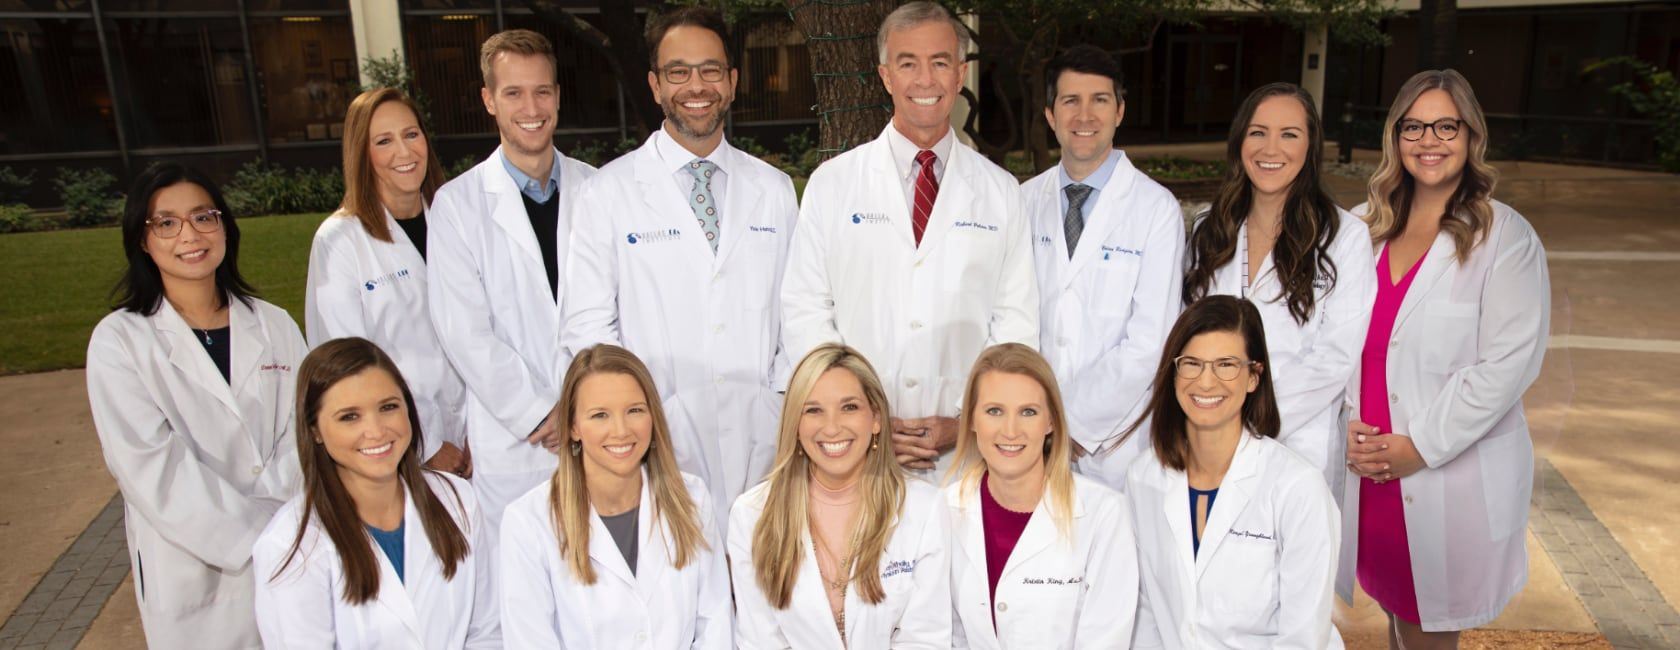 Meet our Providers at Dallas Ear Institute and Hearing Center